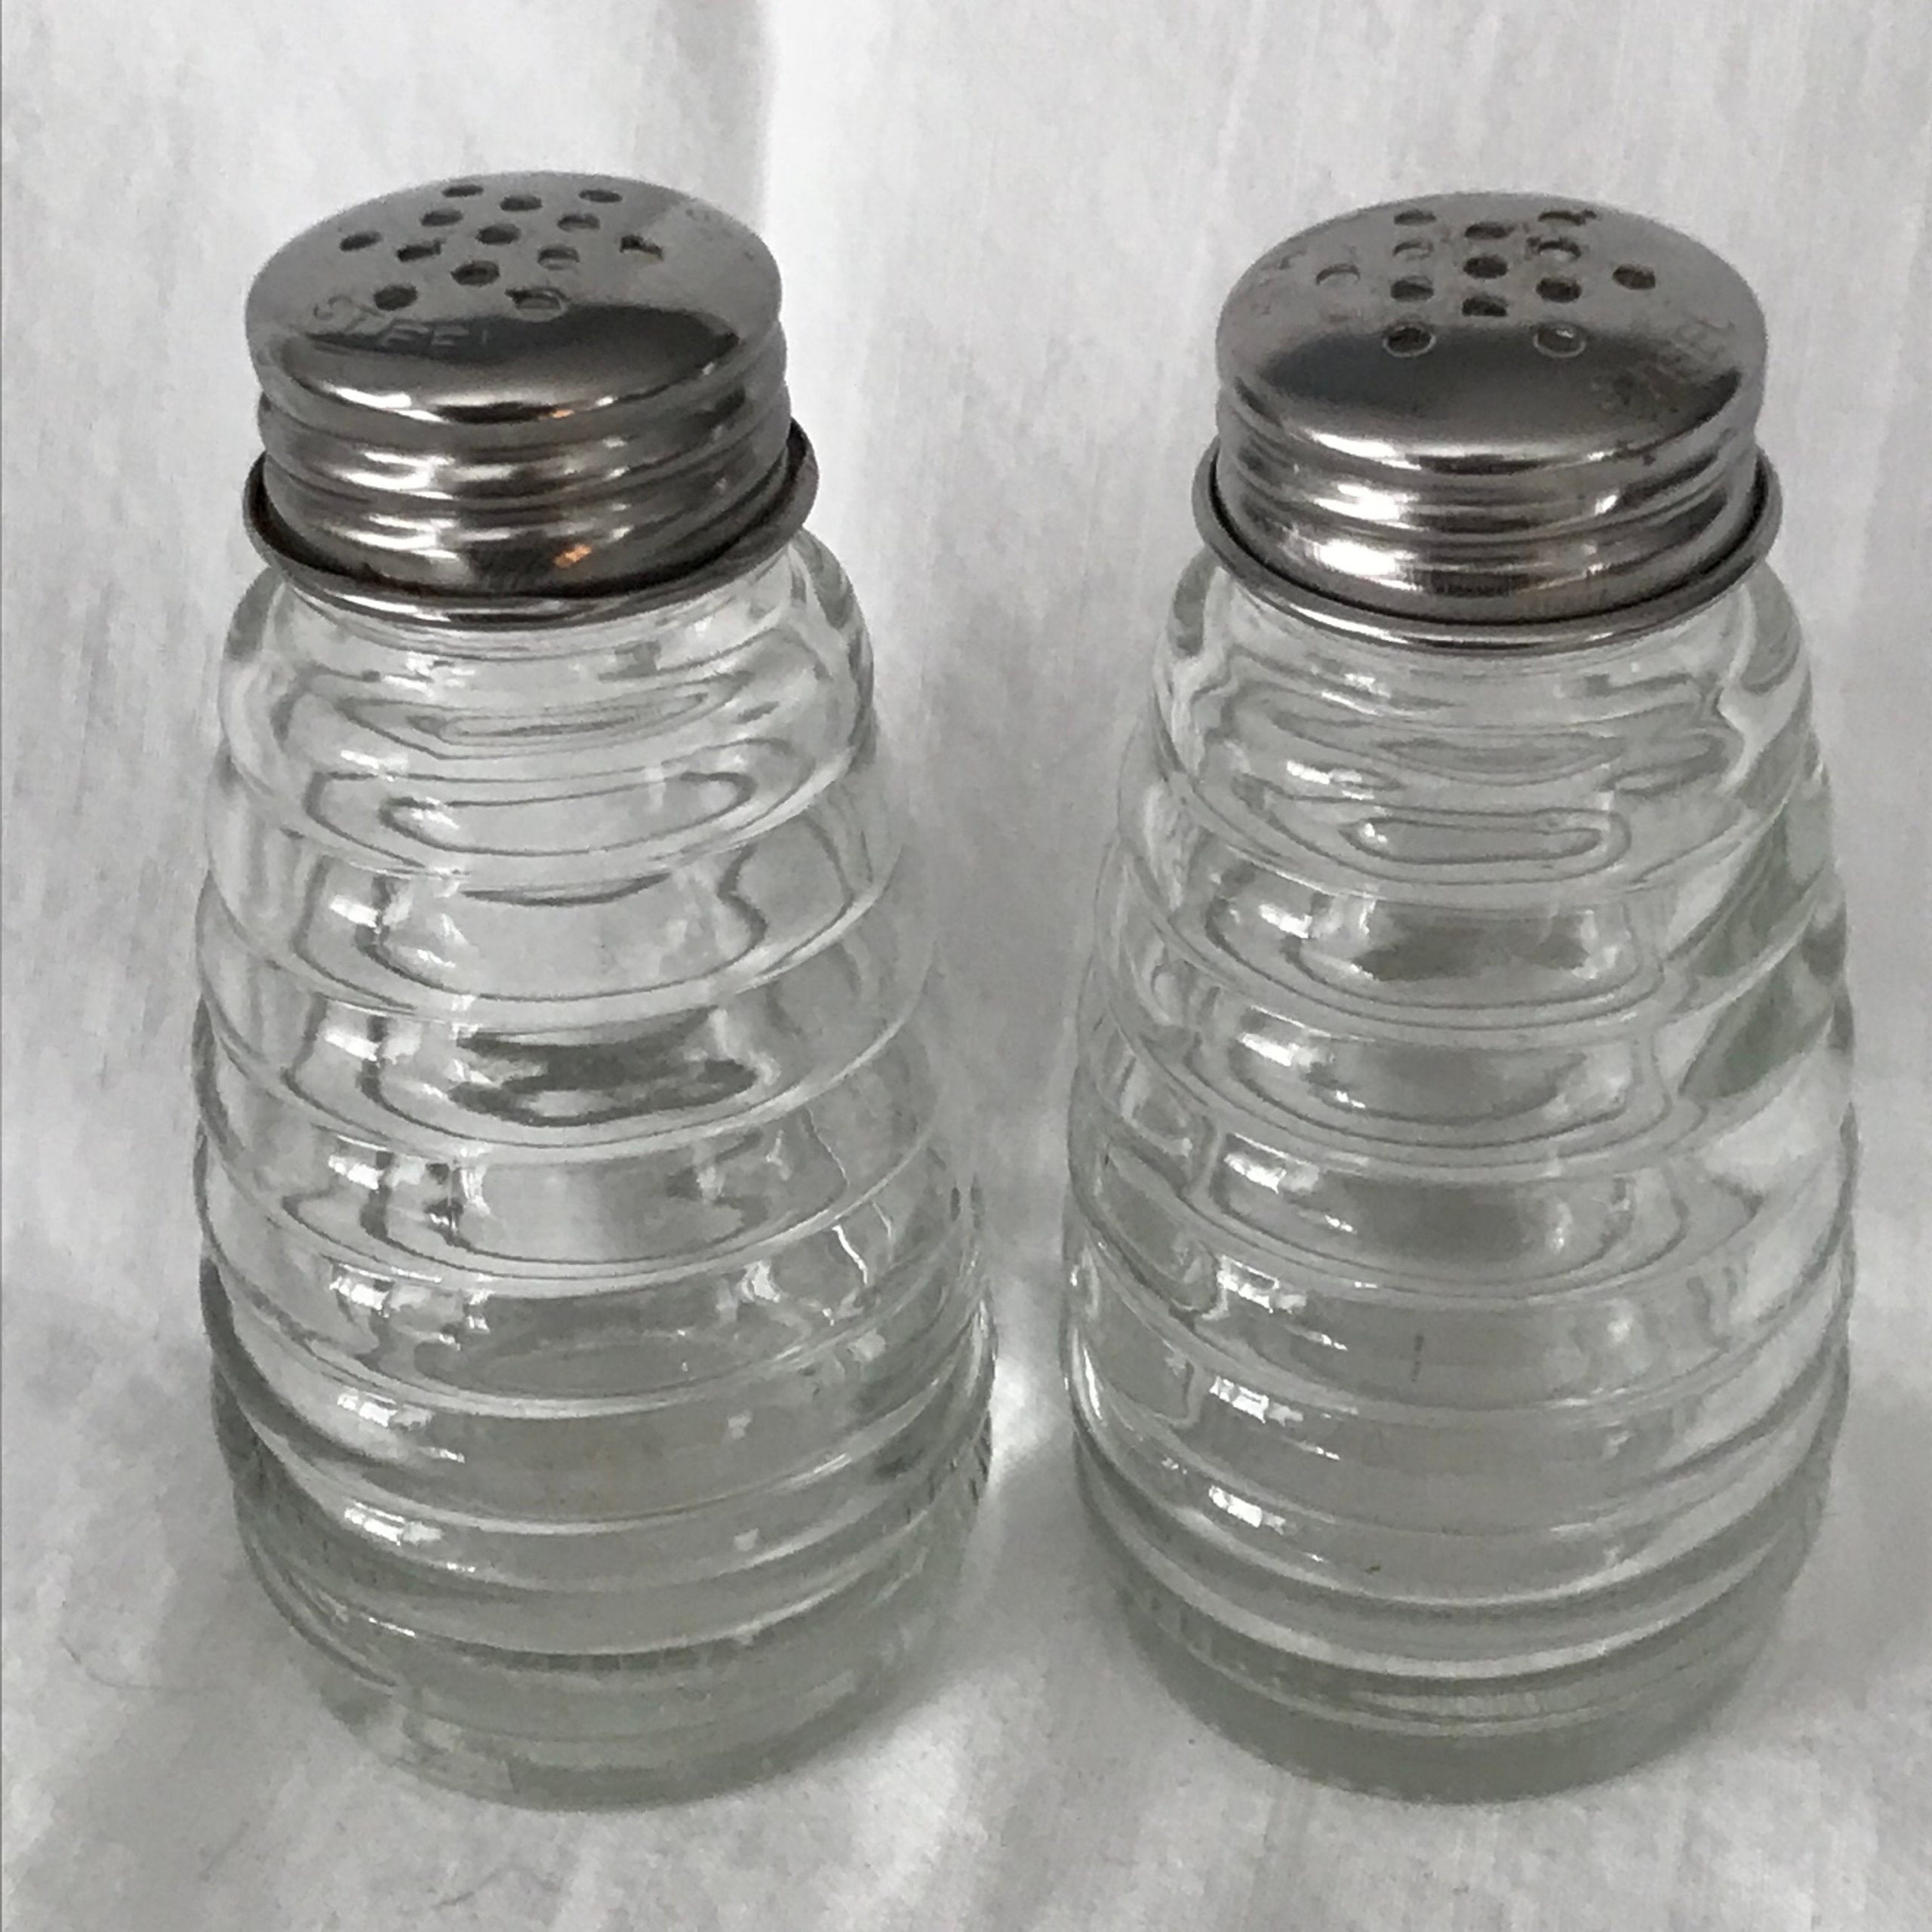 Vintage Salt Pepper Shakers Bee Hive Pattern Glass Retro Kitchen Collectible Display Chrome Lids Farmhouse Table Top Stove Top Patio Carol S True Vintage And Antiques